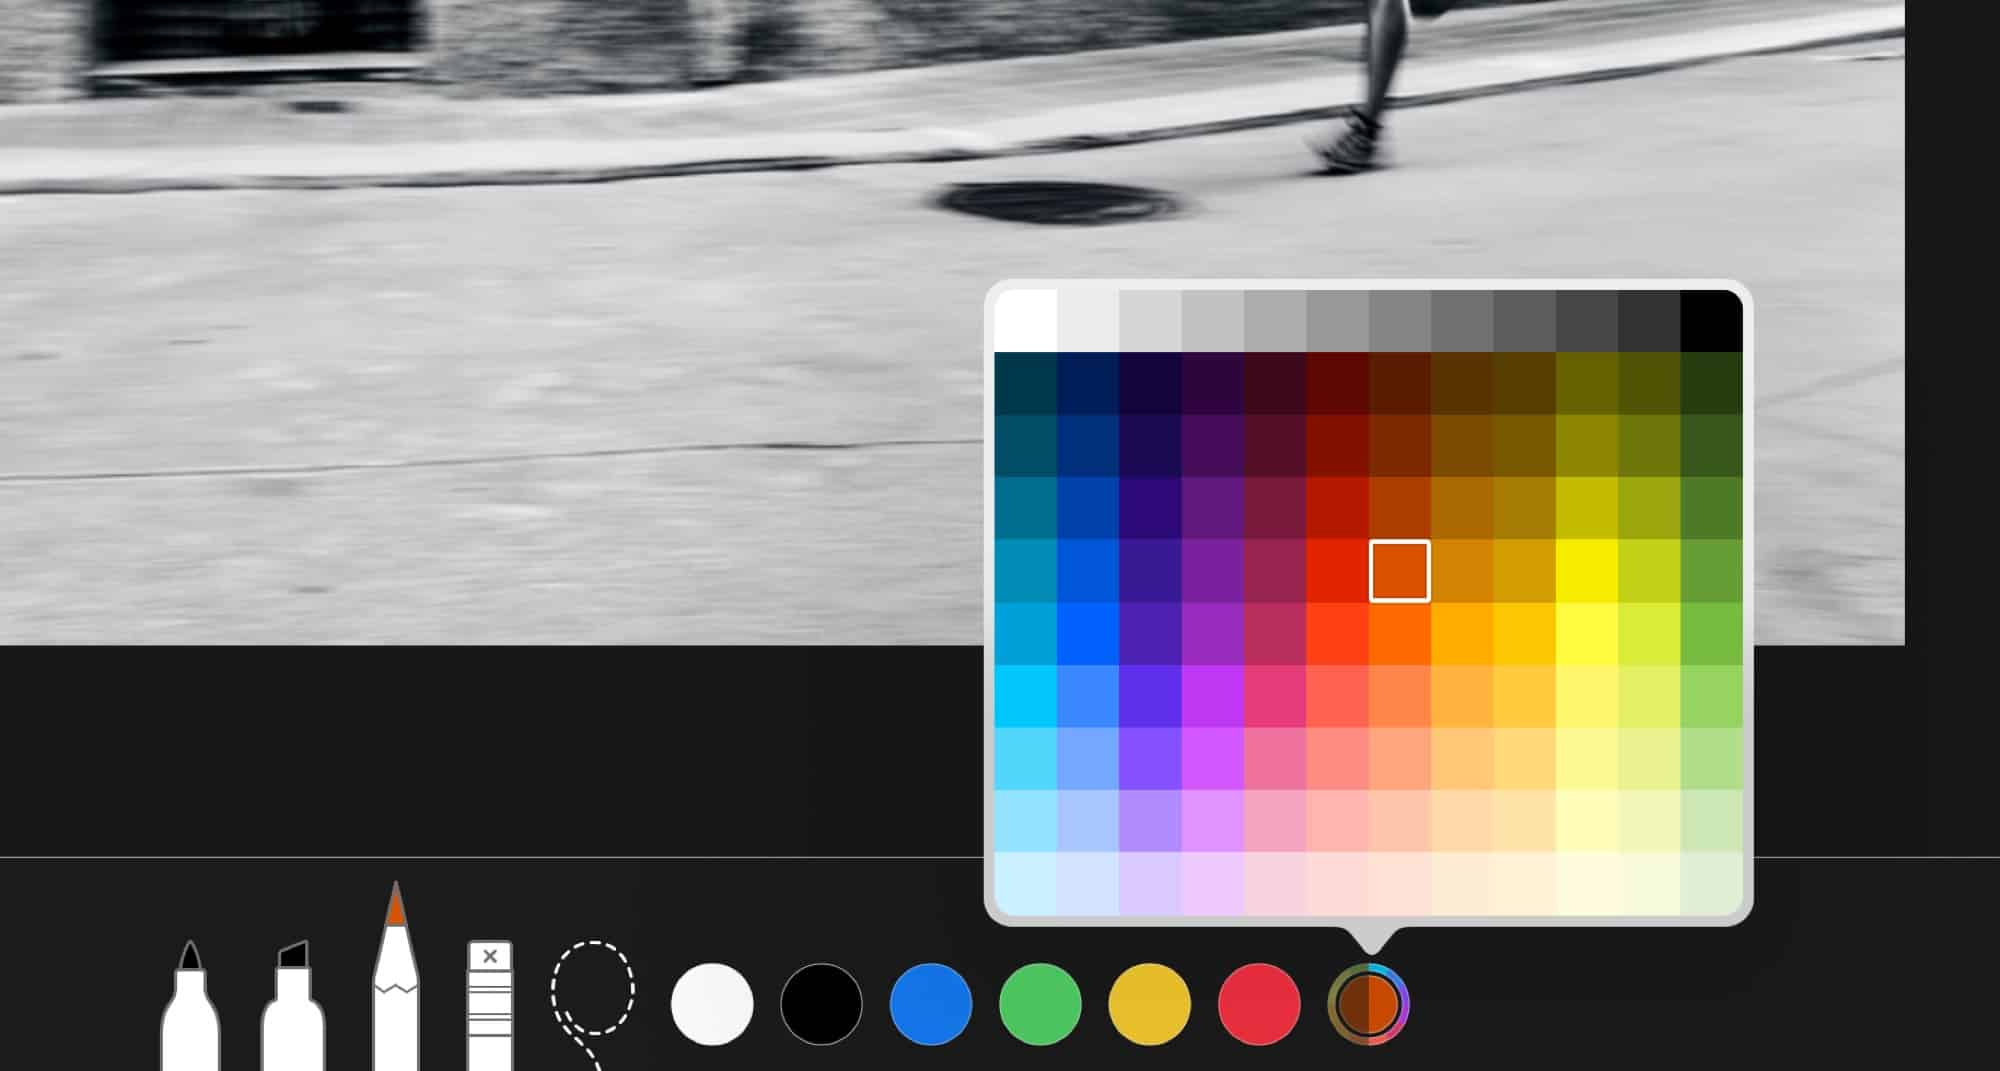 The new iOS 12 color picker 120 new shades to choose from!